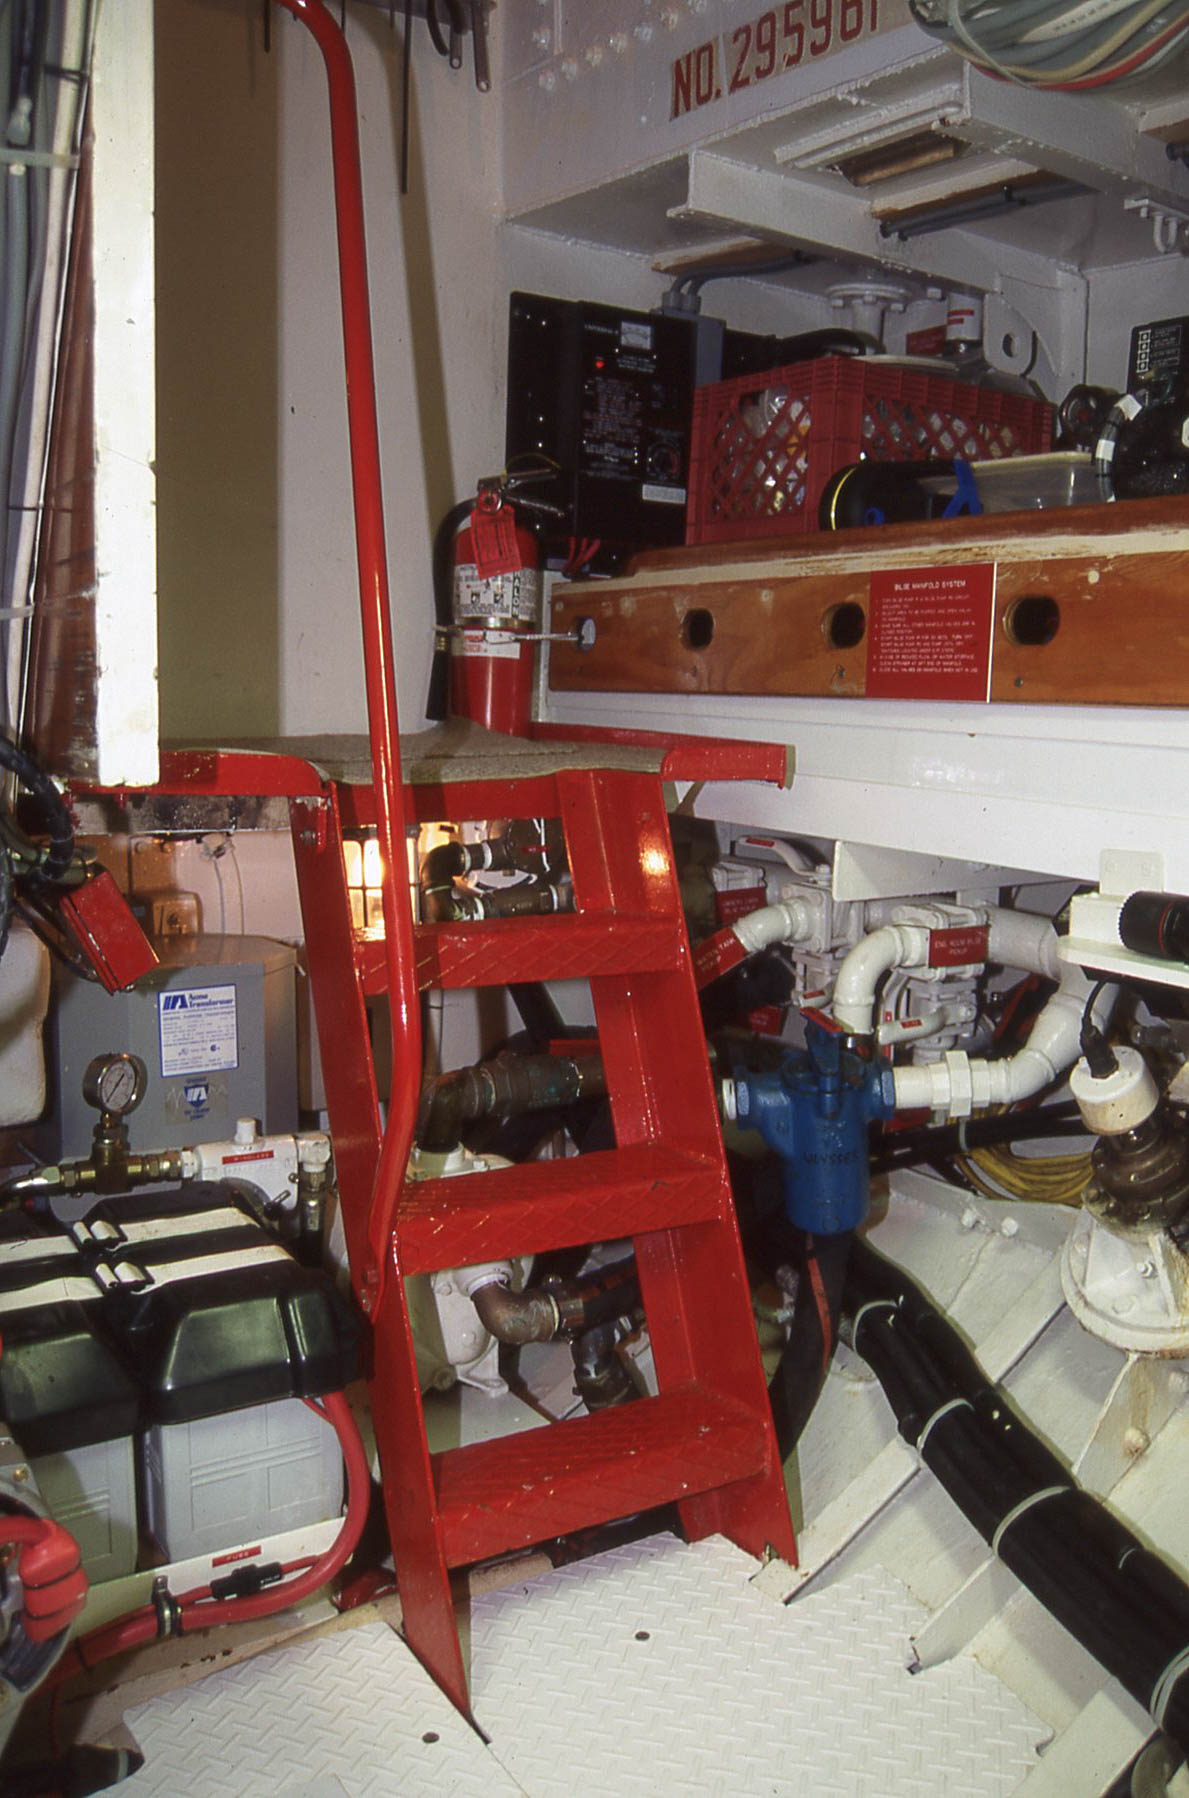 A large door opens onto a landing with secure steps and handrail down into the engine room. This is considered important enough to take up space that would otherwise be used for living accommodations. On this passagemaker, the compromise went in favor of the engine room, or as I used to call it, the Holy Place. To stay safe, we need to treat all systems with meticulous care and reverence. It is the heart of the boat.